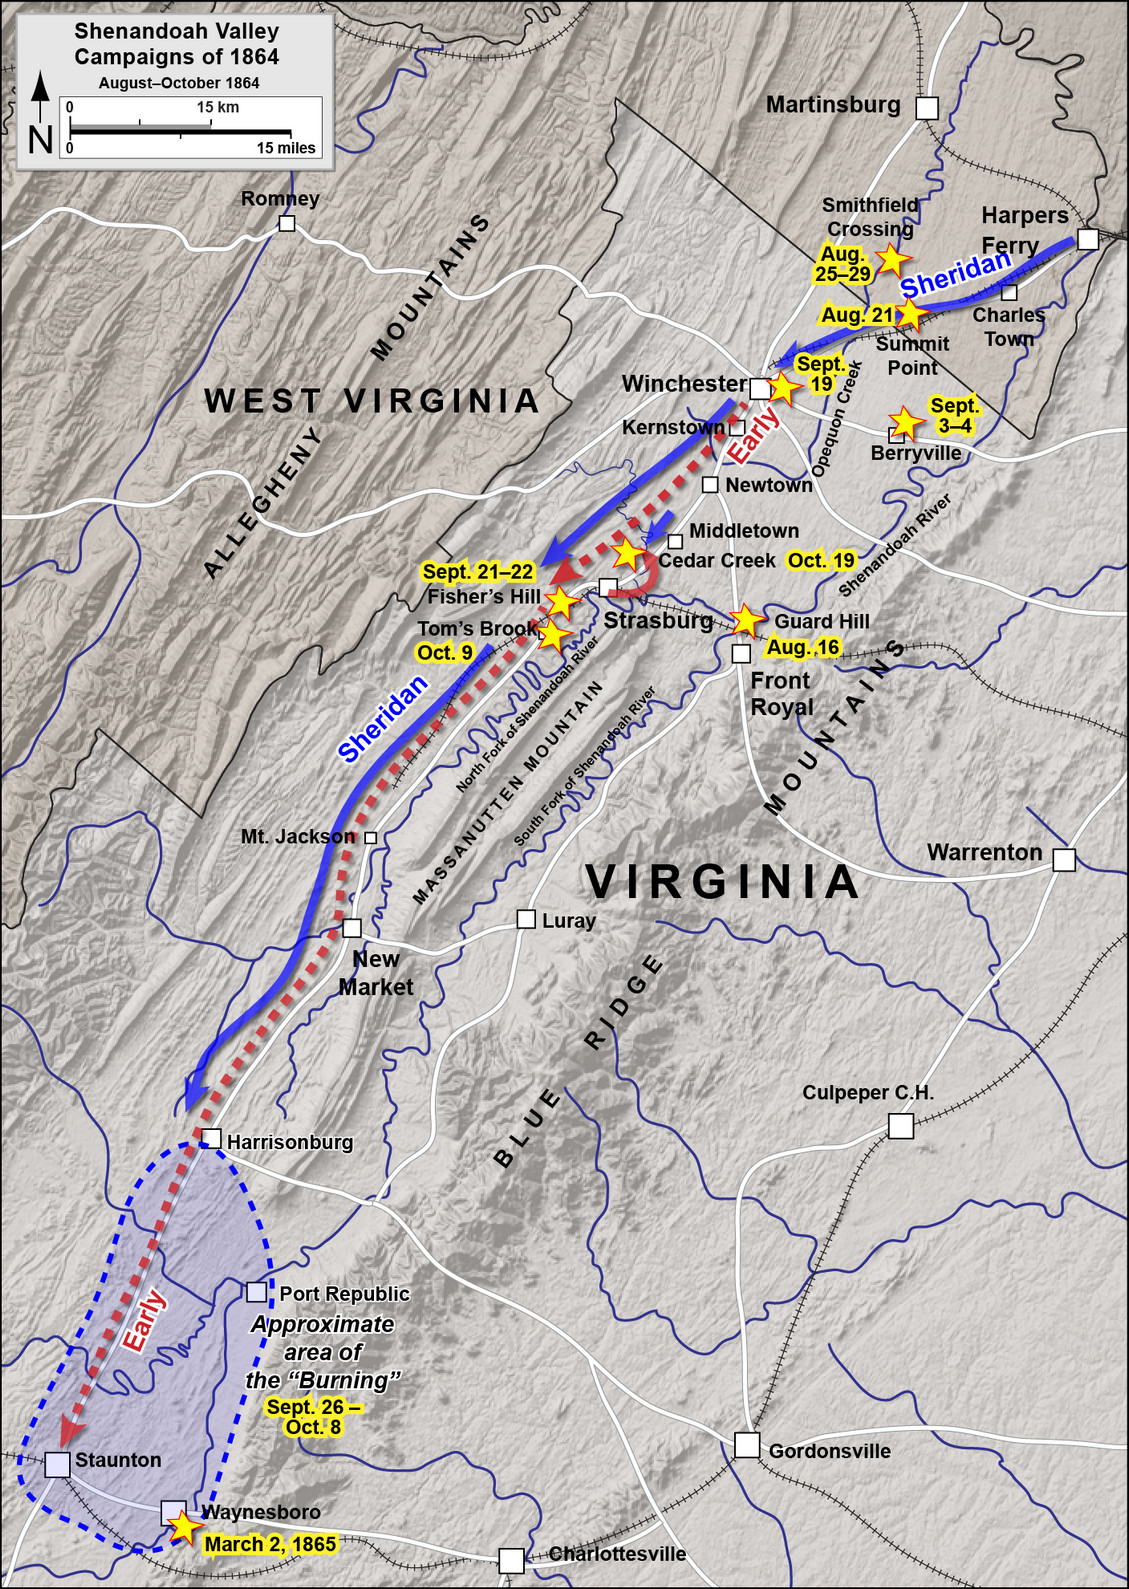 Shenandoah Valley Campaign Map.jpg